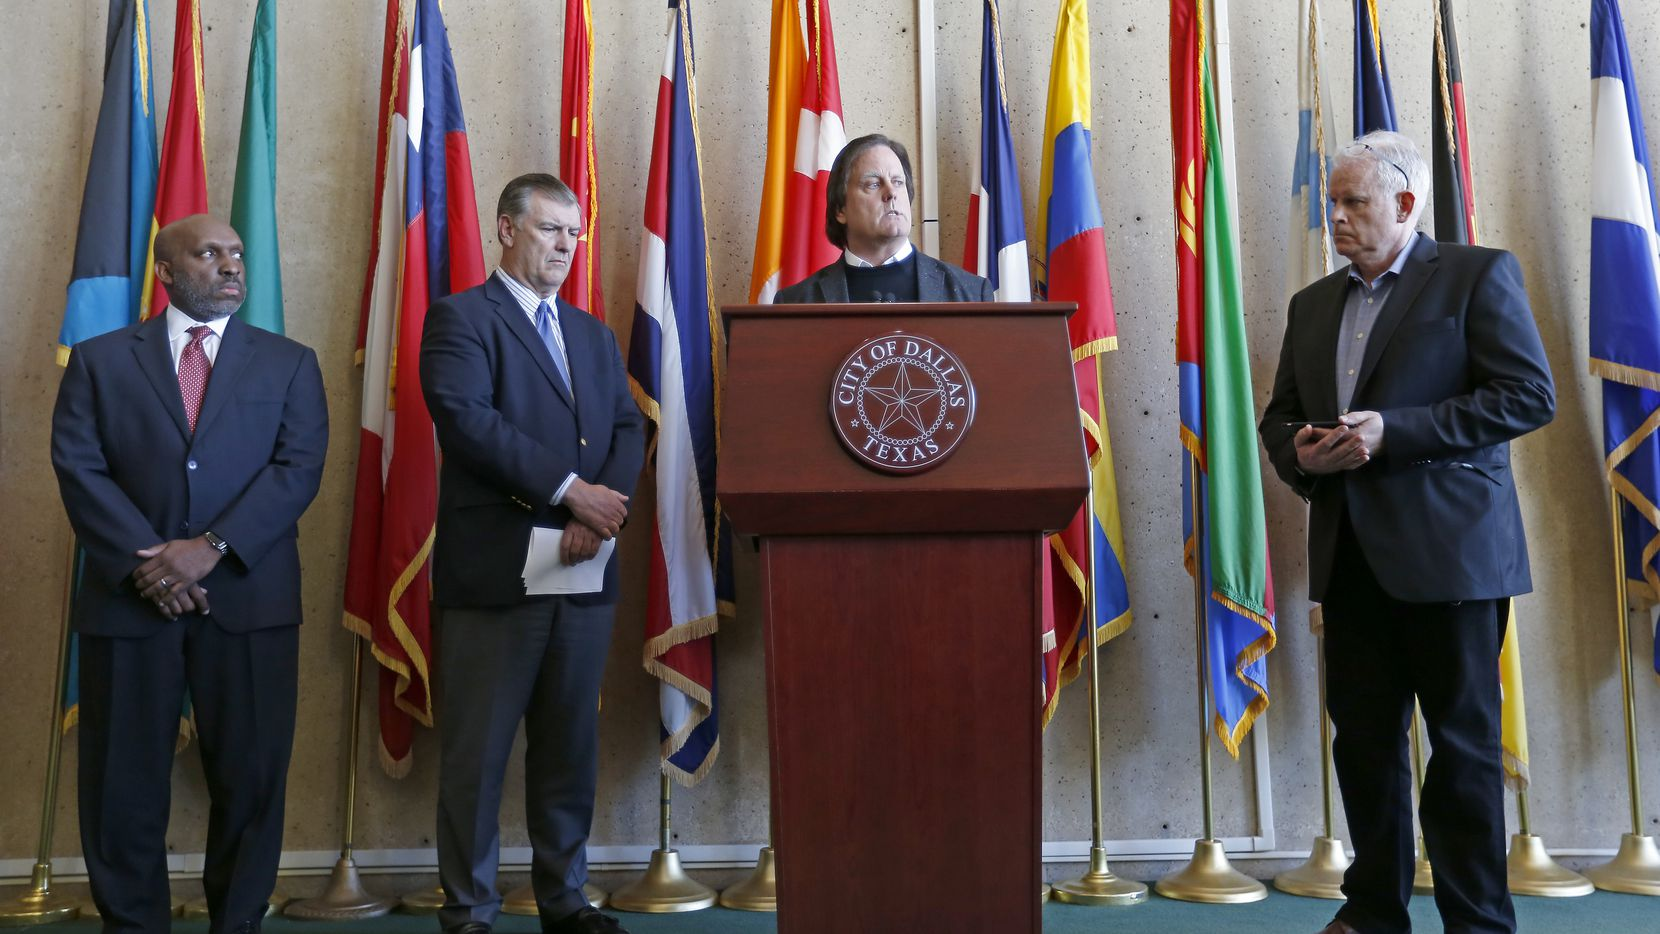 David R. Carey, executive vice president of T-Mobile, speaks at a recent news conference related to Dallas 911 problems as (from left) City Manage, T.C. Broadnax, Mayor Mike Rawlings  and Neville R. Ray, executive vice president and chief technology officer of T-Mobile, listen.